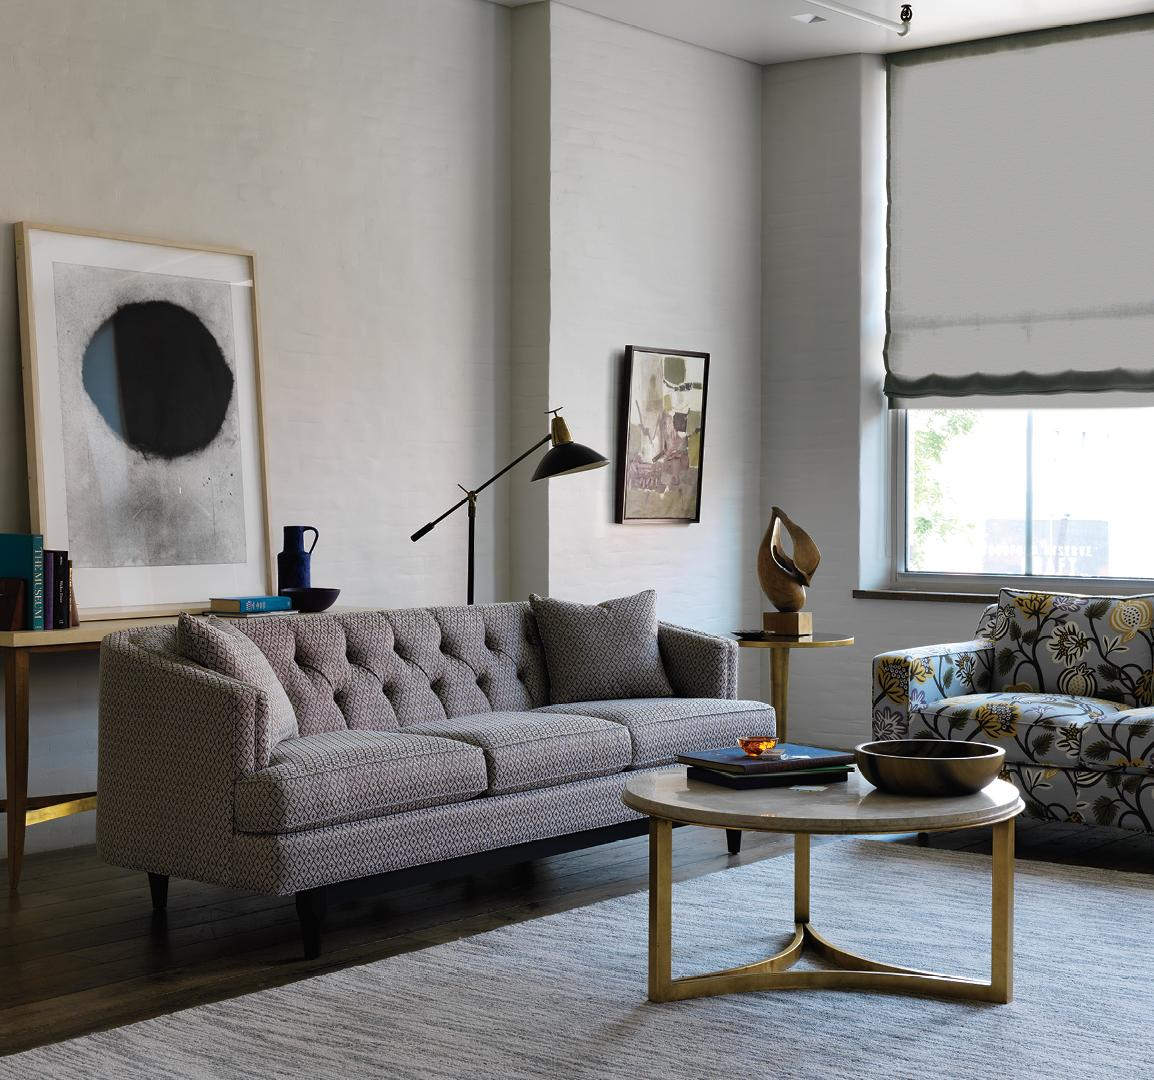 dwellstudio with round coffee table and area rugs